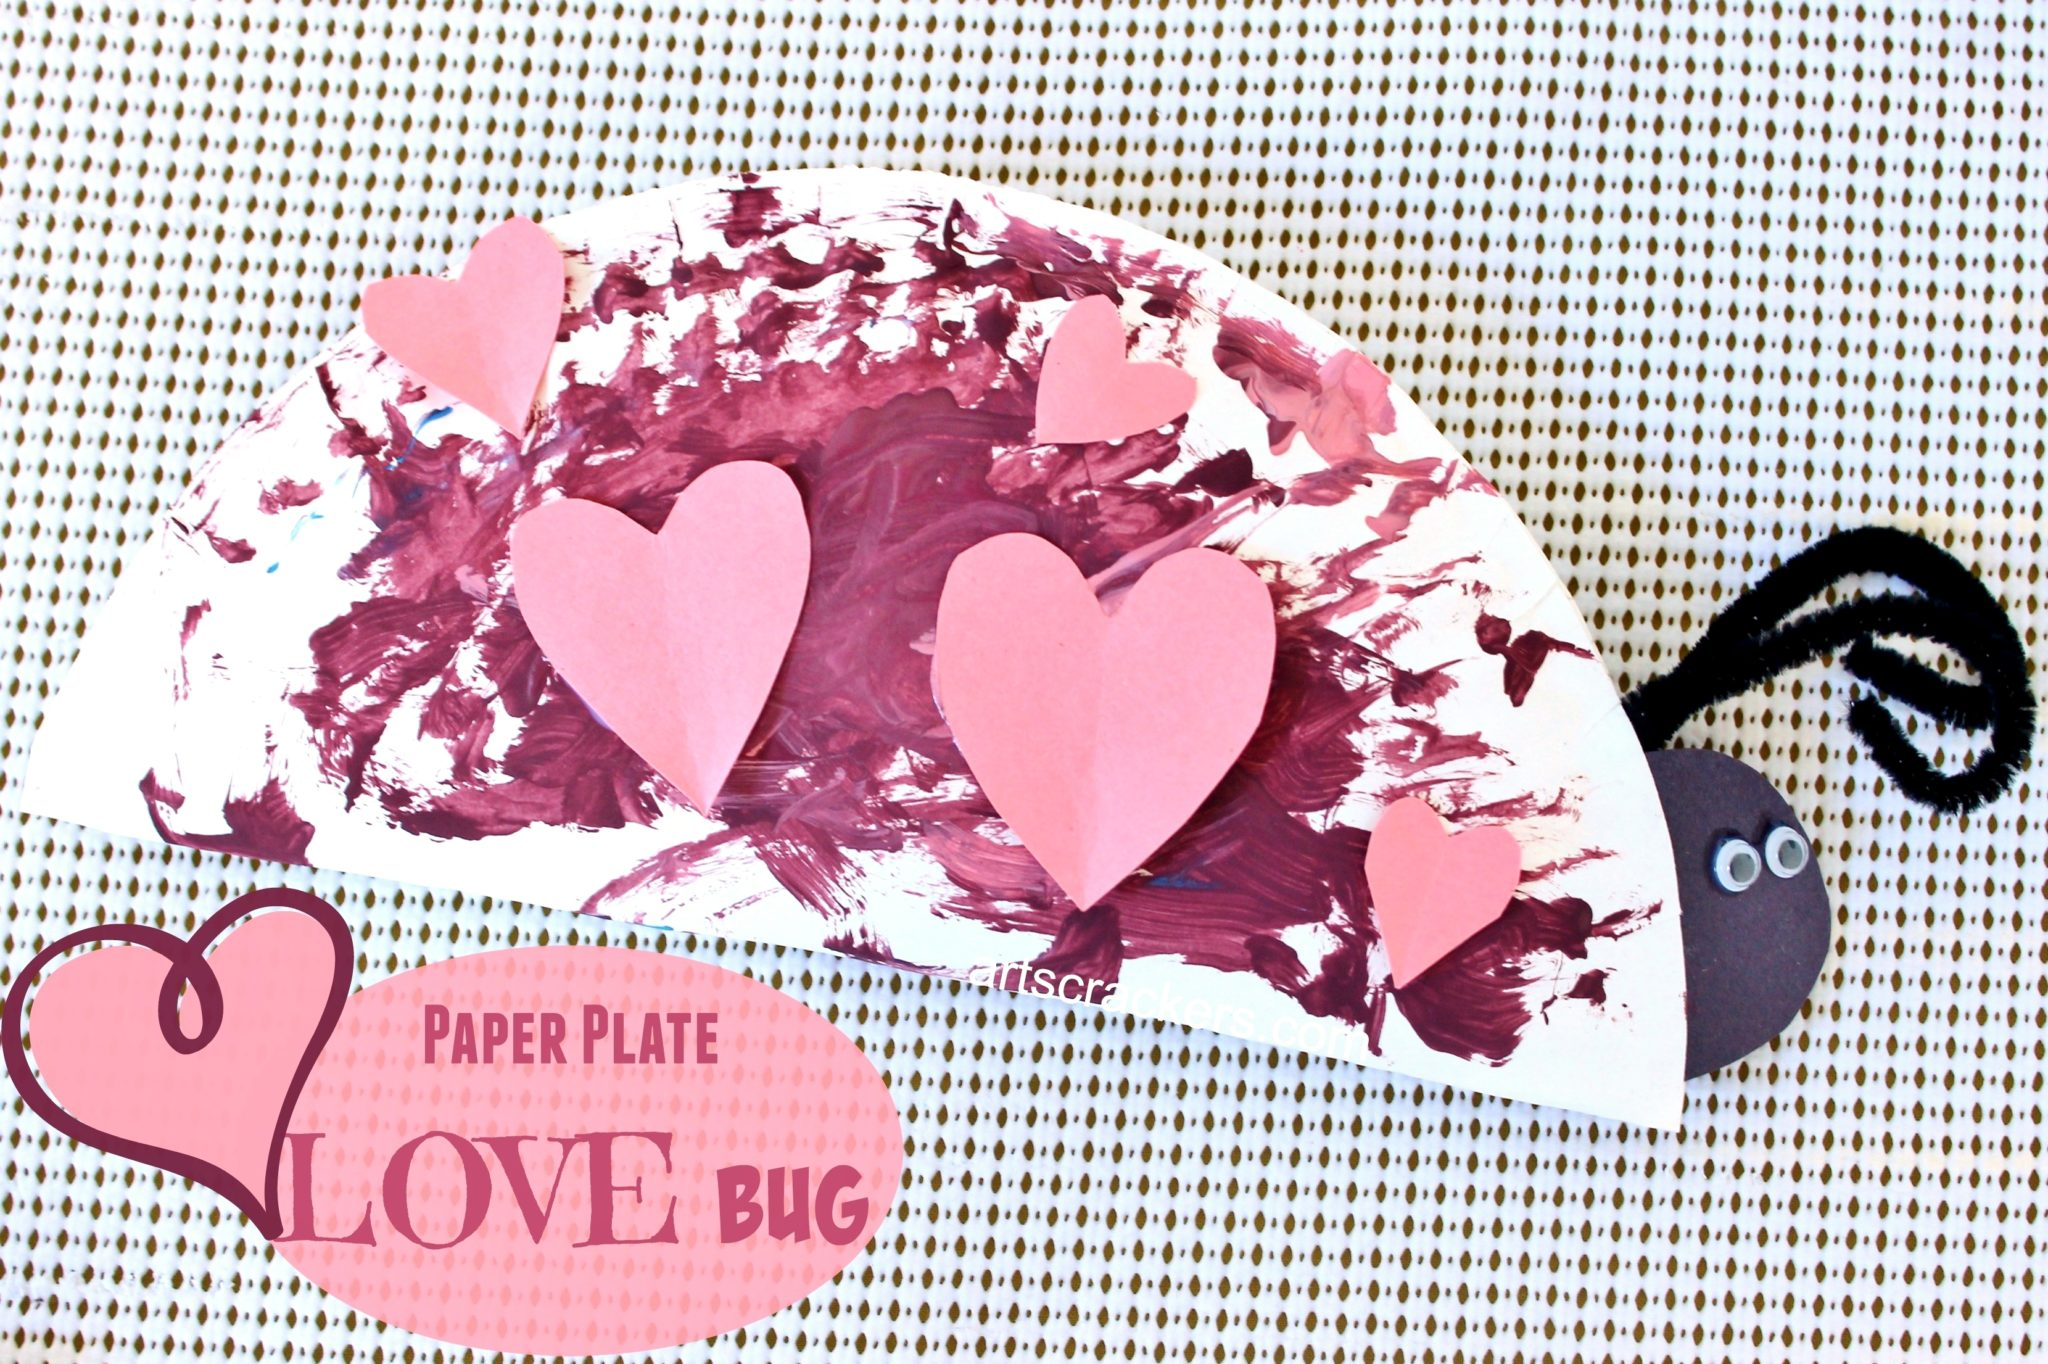 Paper Plate Love Bug Craft. Click on the picture to view the tutorial.